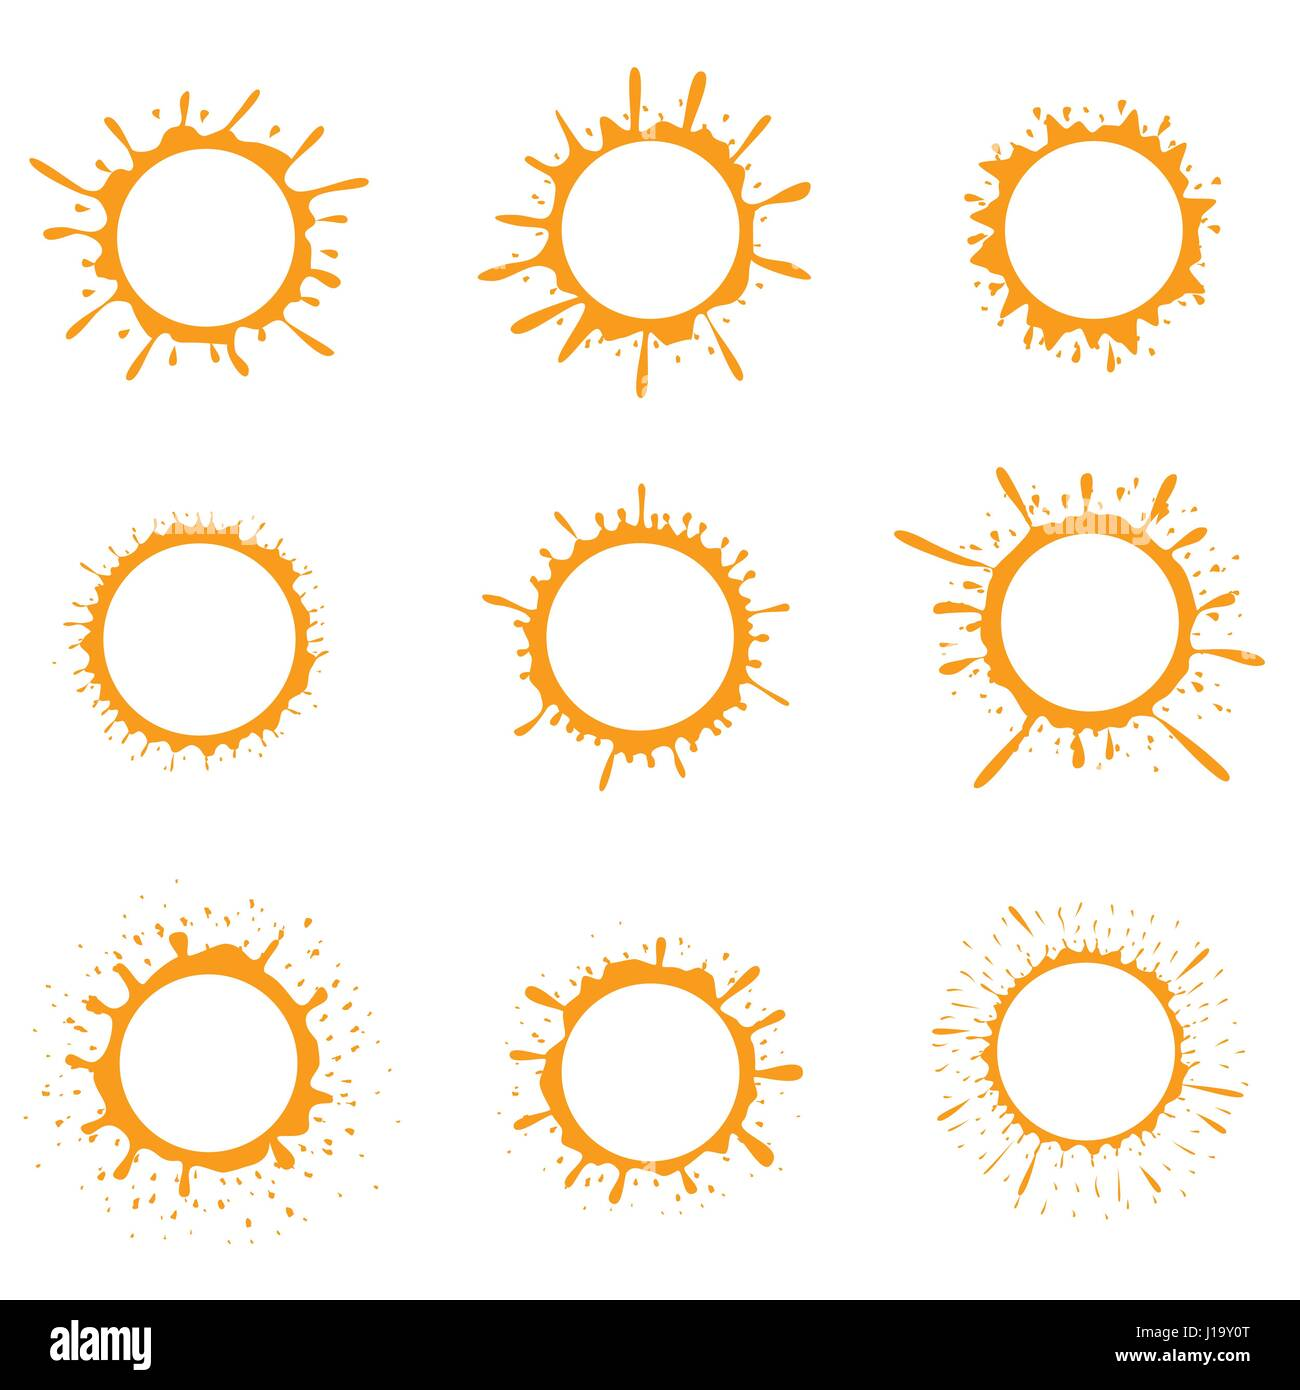 Orange paint splash sun icons - Stock Image